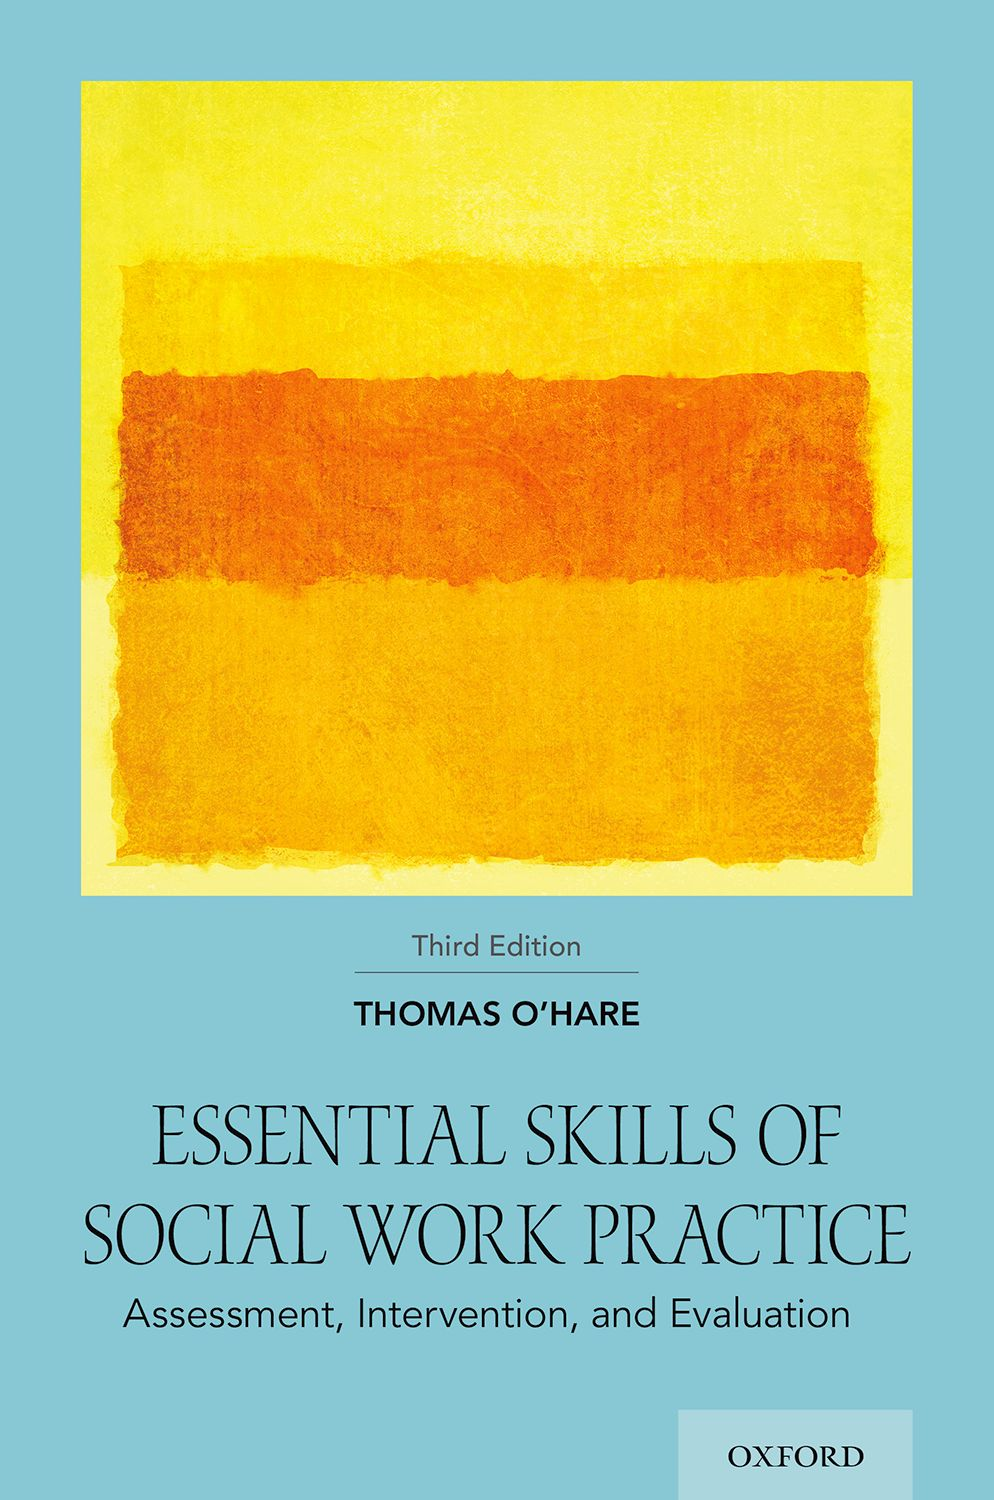 Essential Skills of Social Work Practice, 3e Instructor Resources